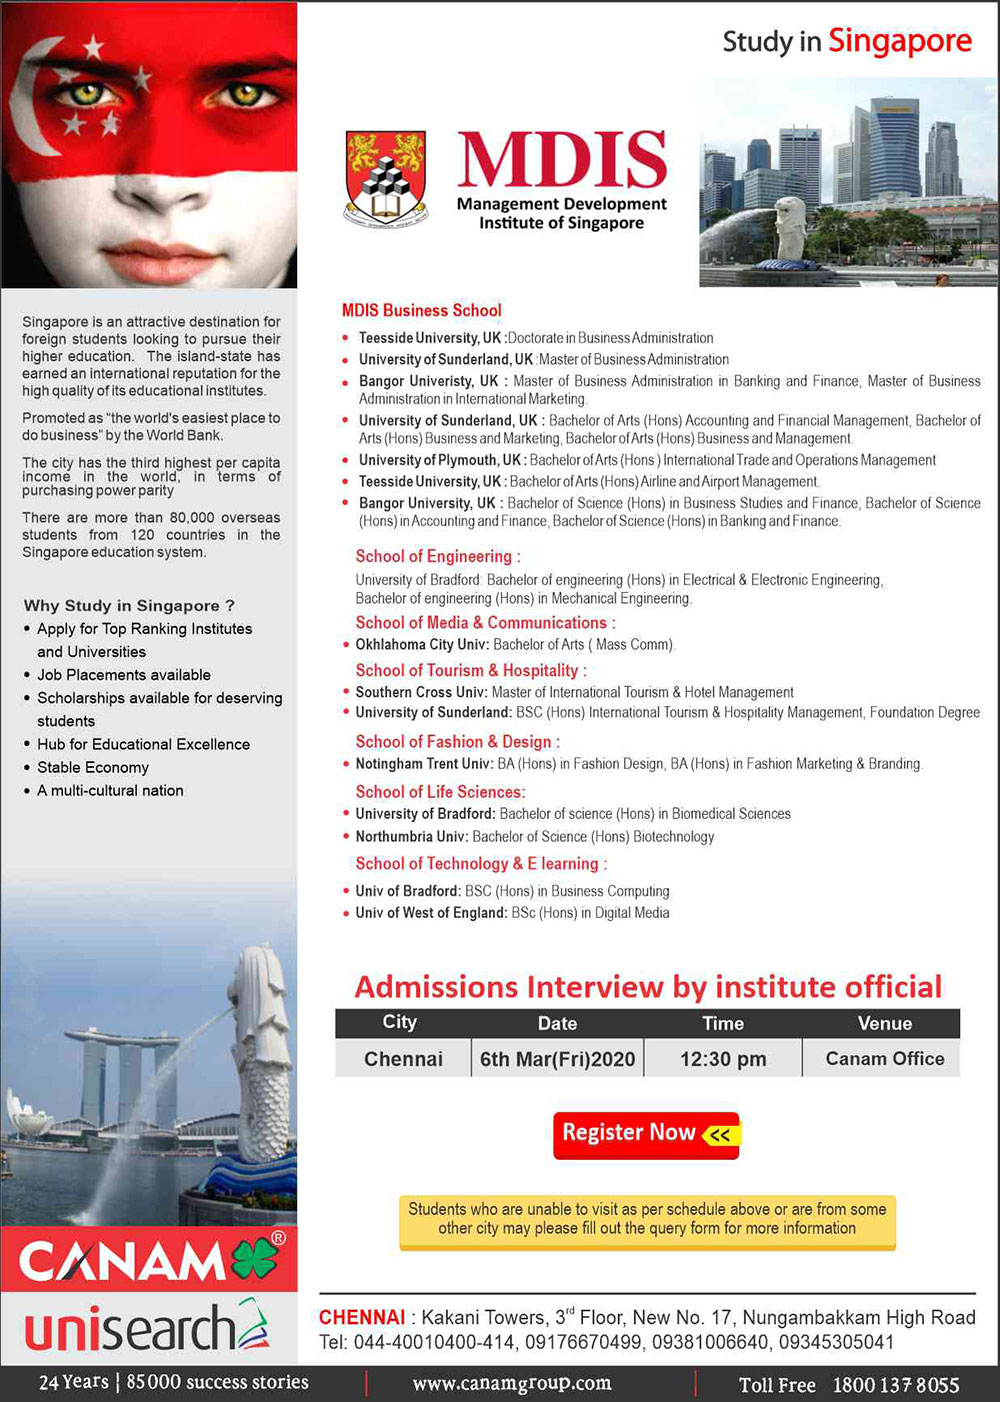 management-development-institute-of-singapore